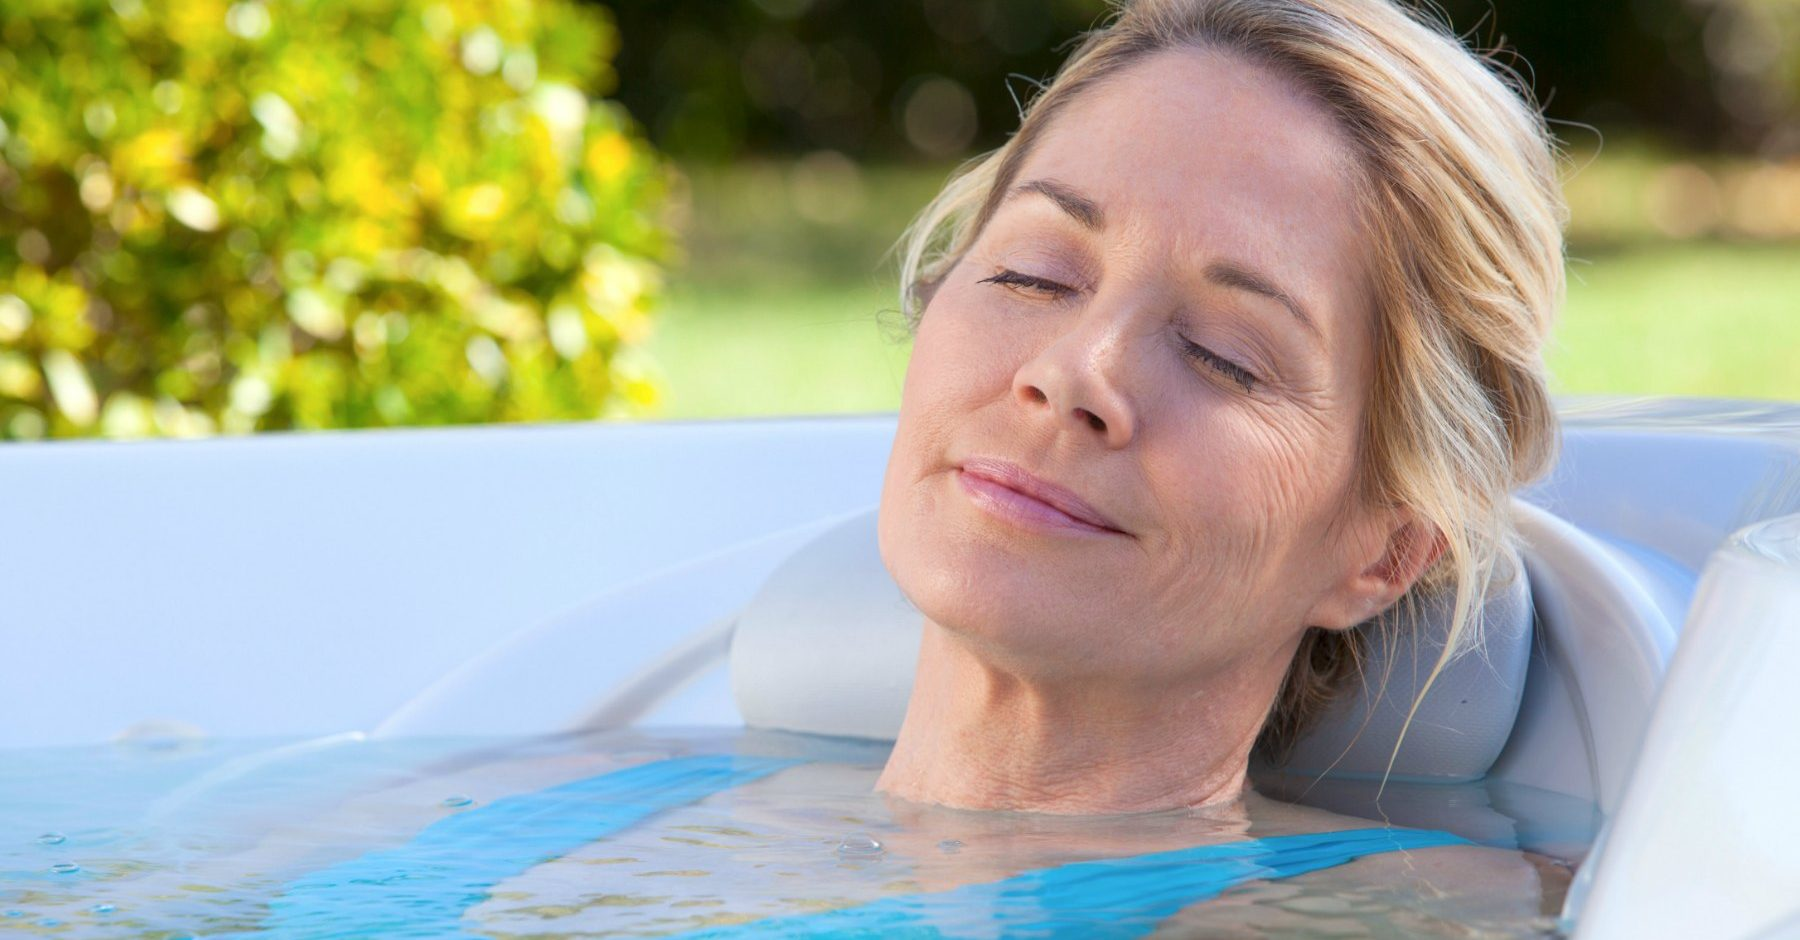 What is Hydrotherapy & How Can it Help?